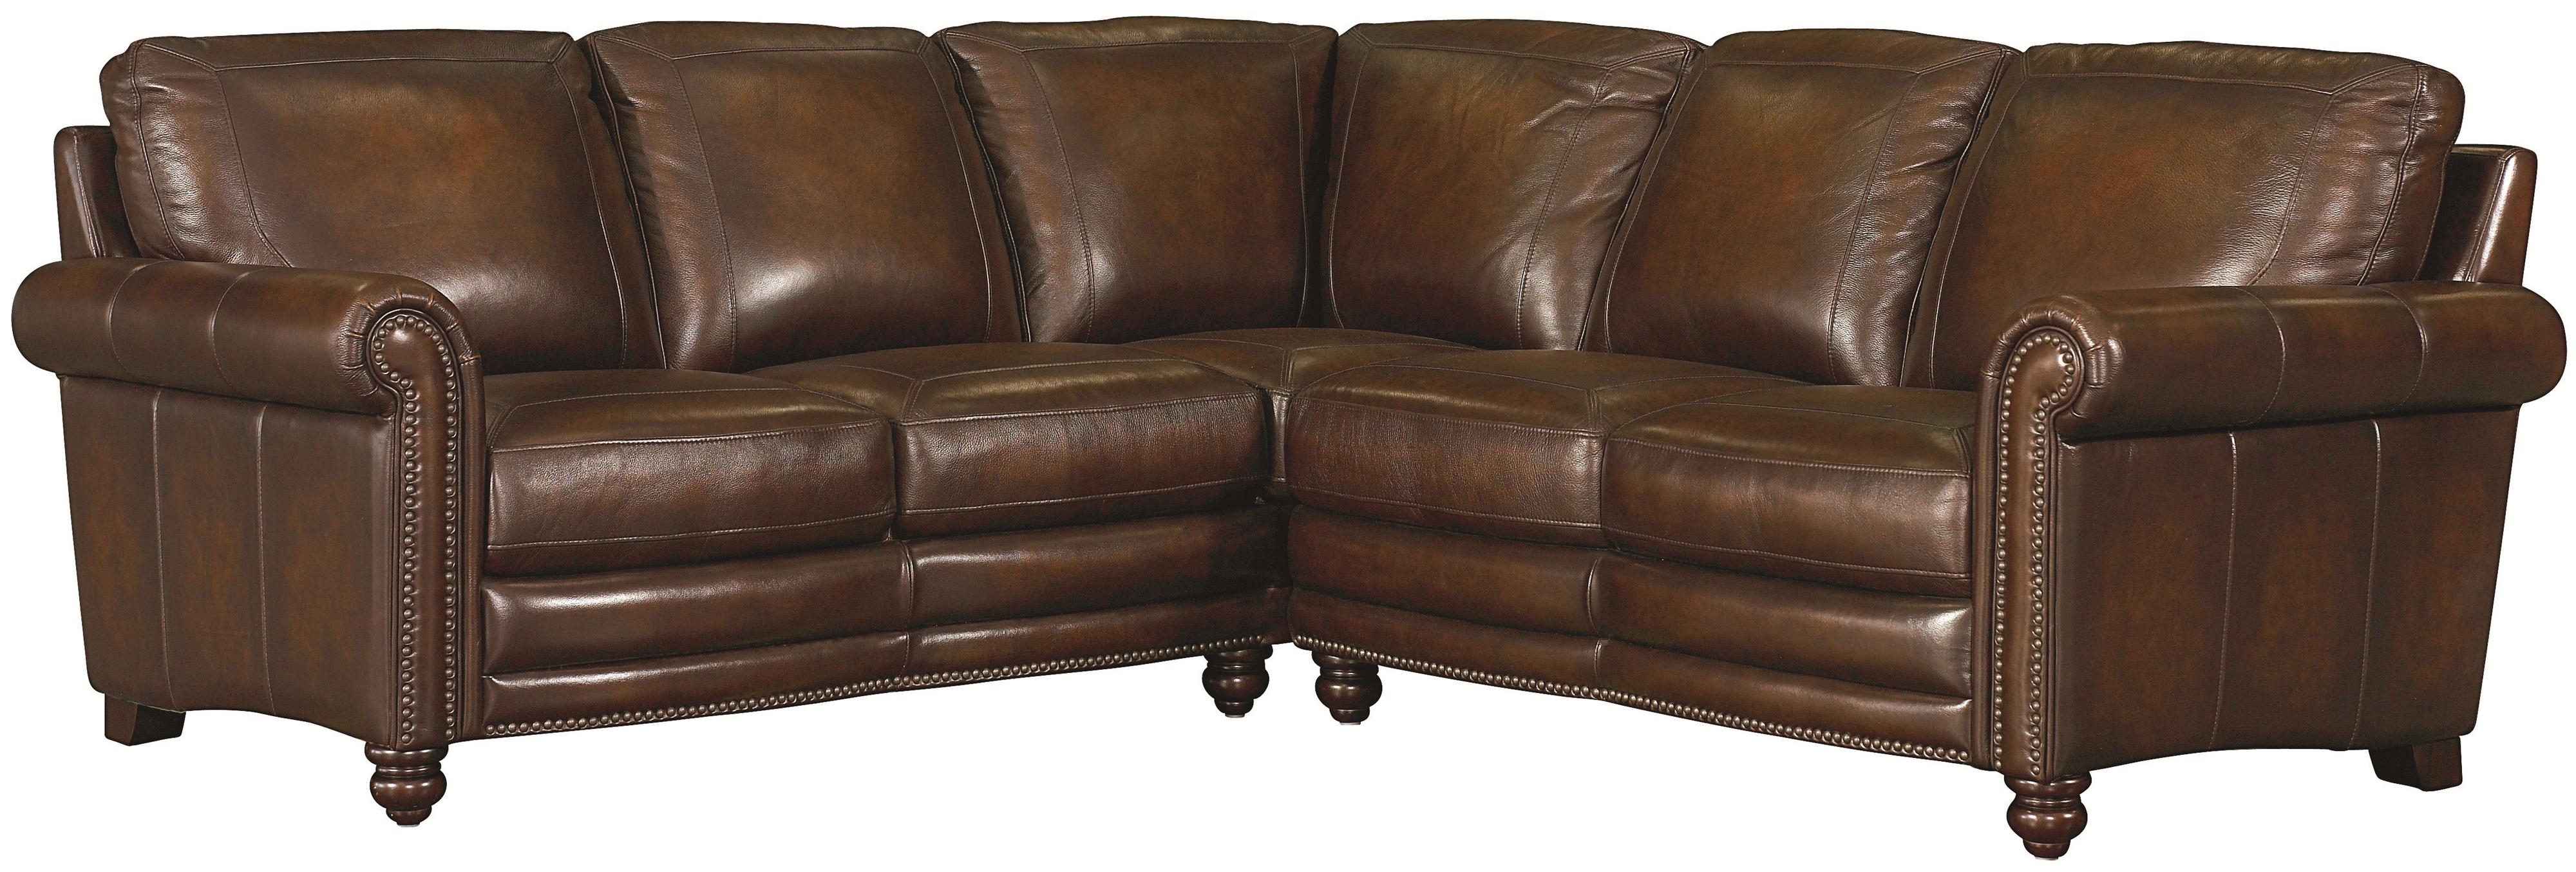 Hamilton Traditional L-Shaped Leather Sectional with Nail Head Trim by Bassett : leather sectional with nailhead trim - Sectionals, Sofas & Couches